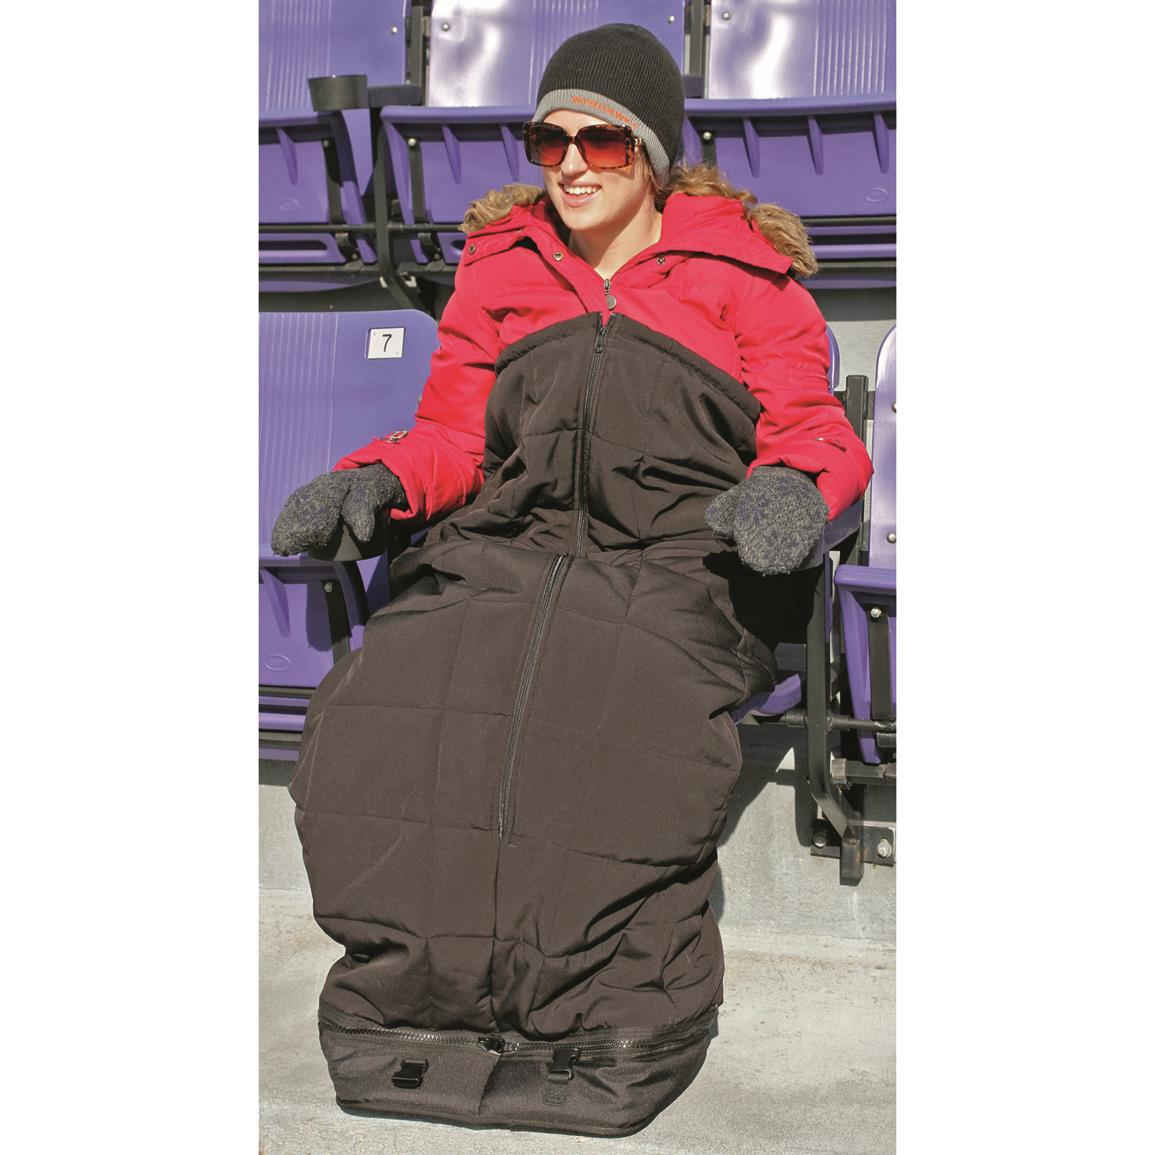 Half in the Bag, Insulated Stadium Style, Black